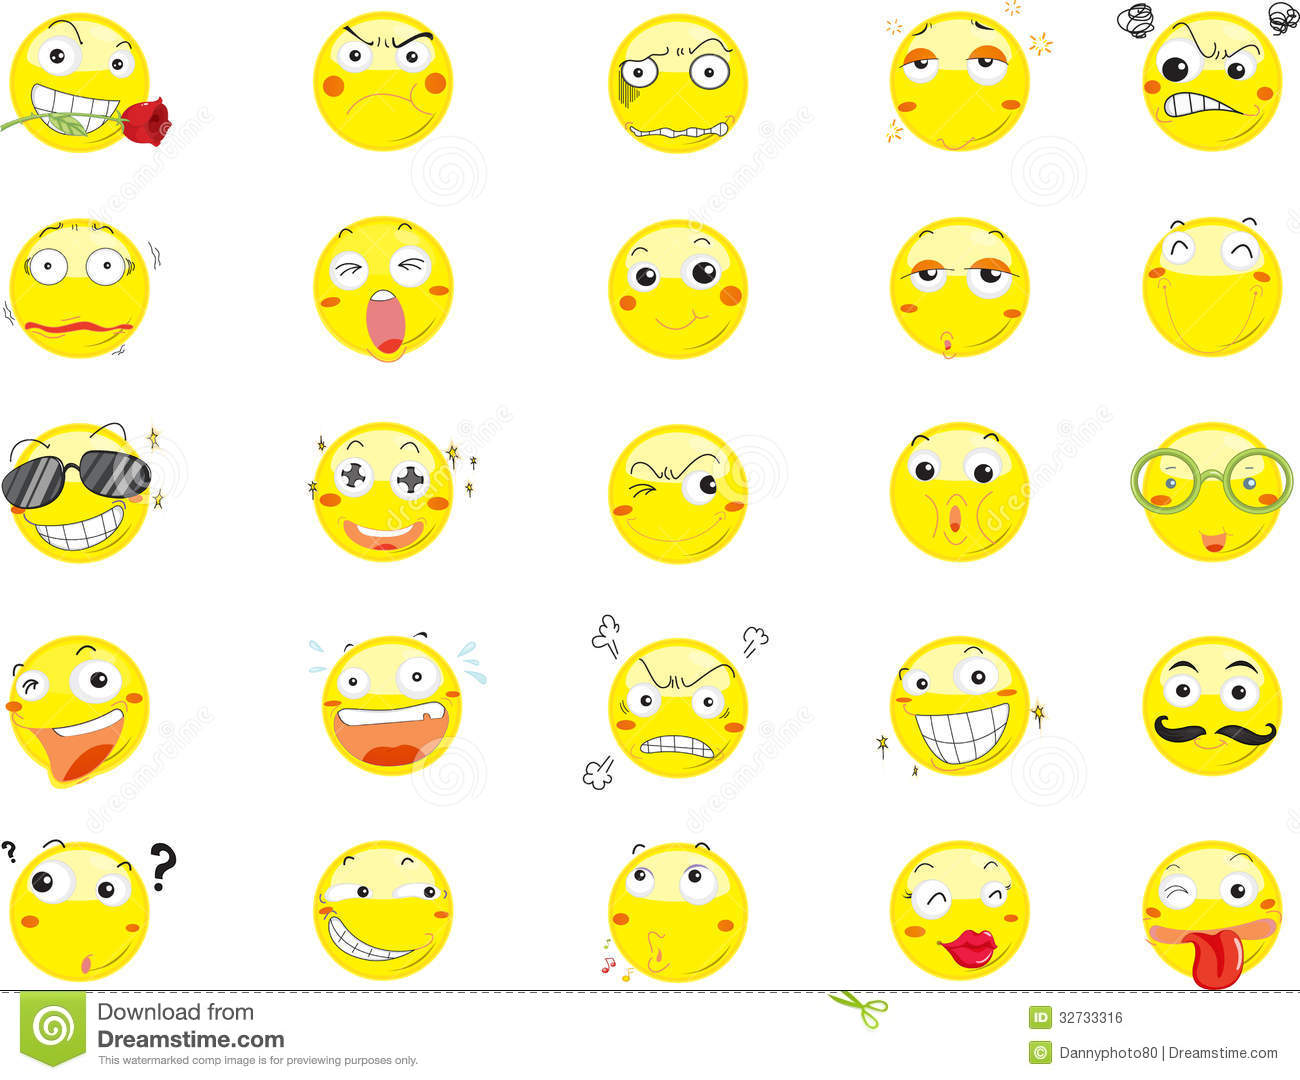 Laughing Smiley Face Images